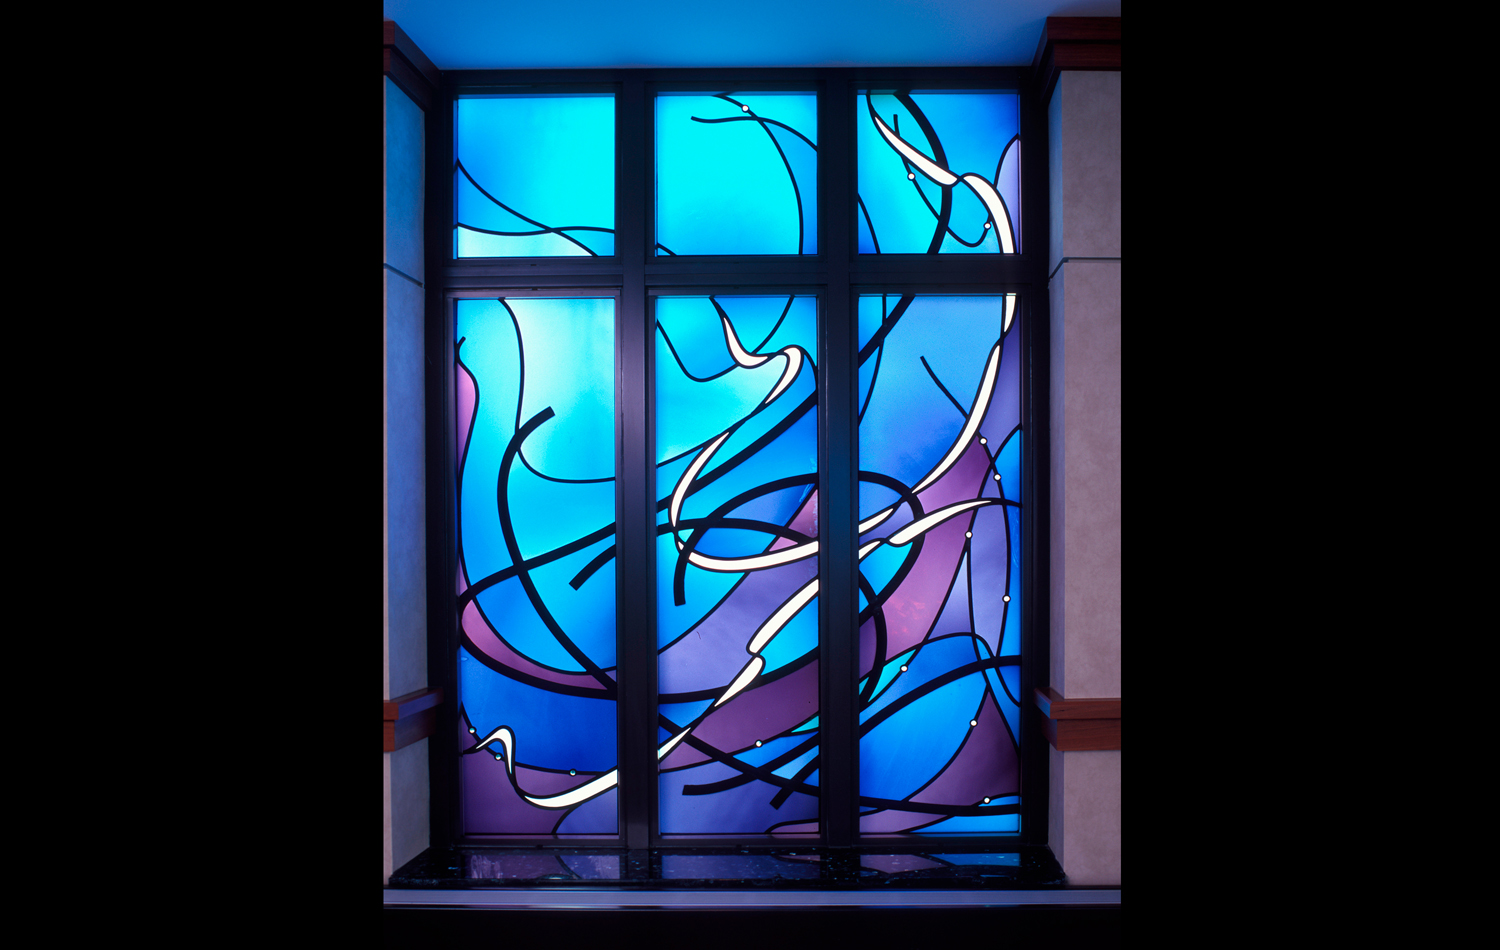 """""""Ruah"""" Window: With an all embracing, but very gentle, sweep of color and movement, this window speaks of Ruah, the """"Breath of God."""" This soothing voice surrounds us, is always with us. It is so very gentle, yet awesomely powerful, just as the air is both breeze and wind."""